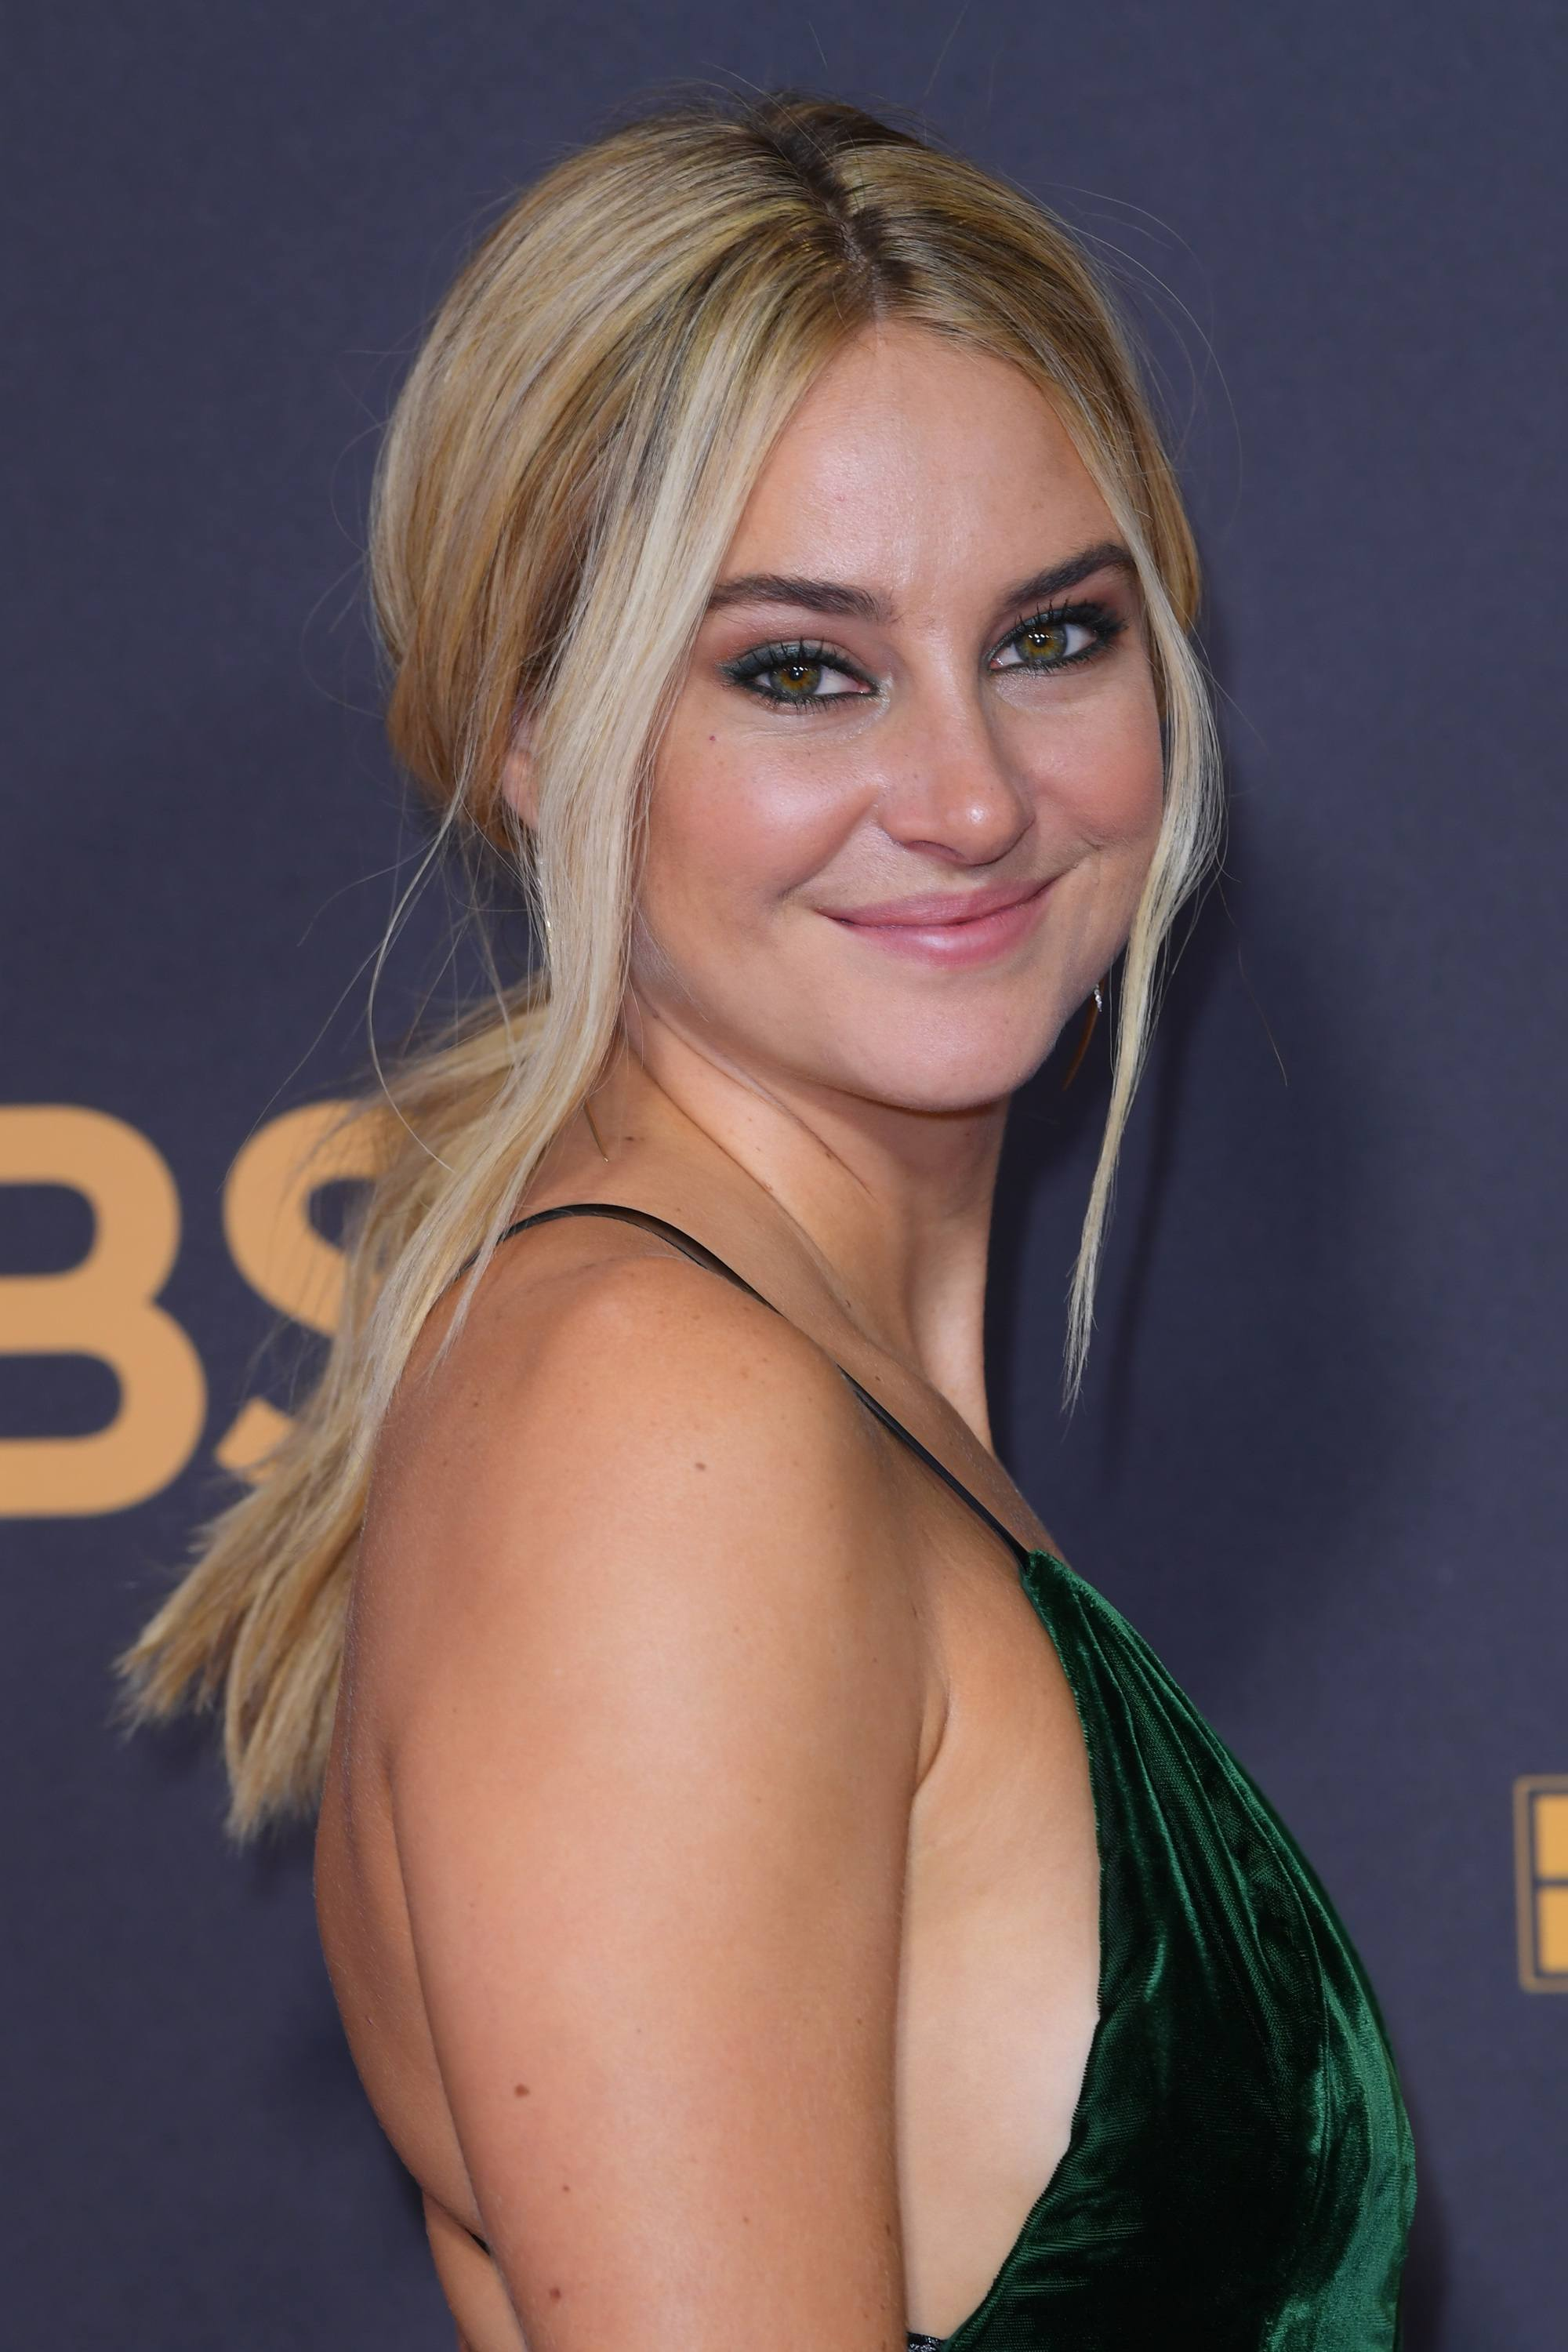 triangle face hairstyles: actress shailene woodley with blonde hair styled in a low ponytail with a few loose strands around her face